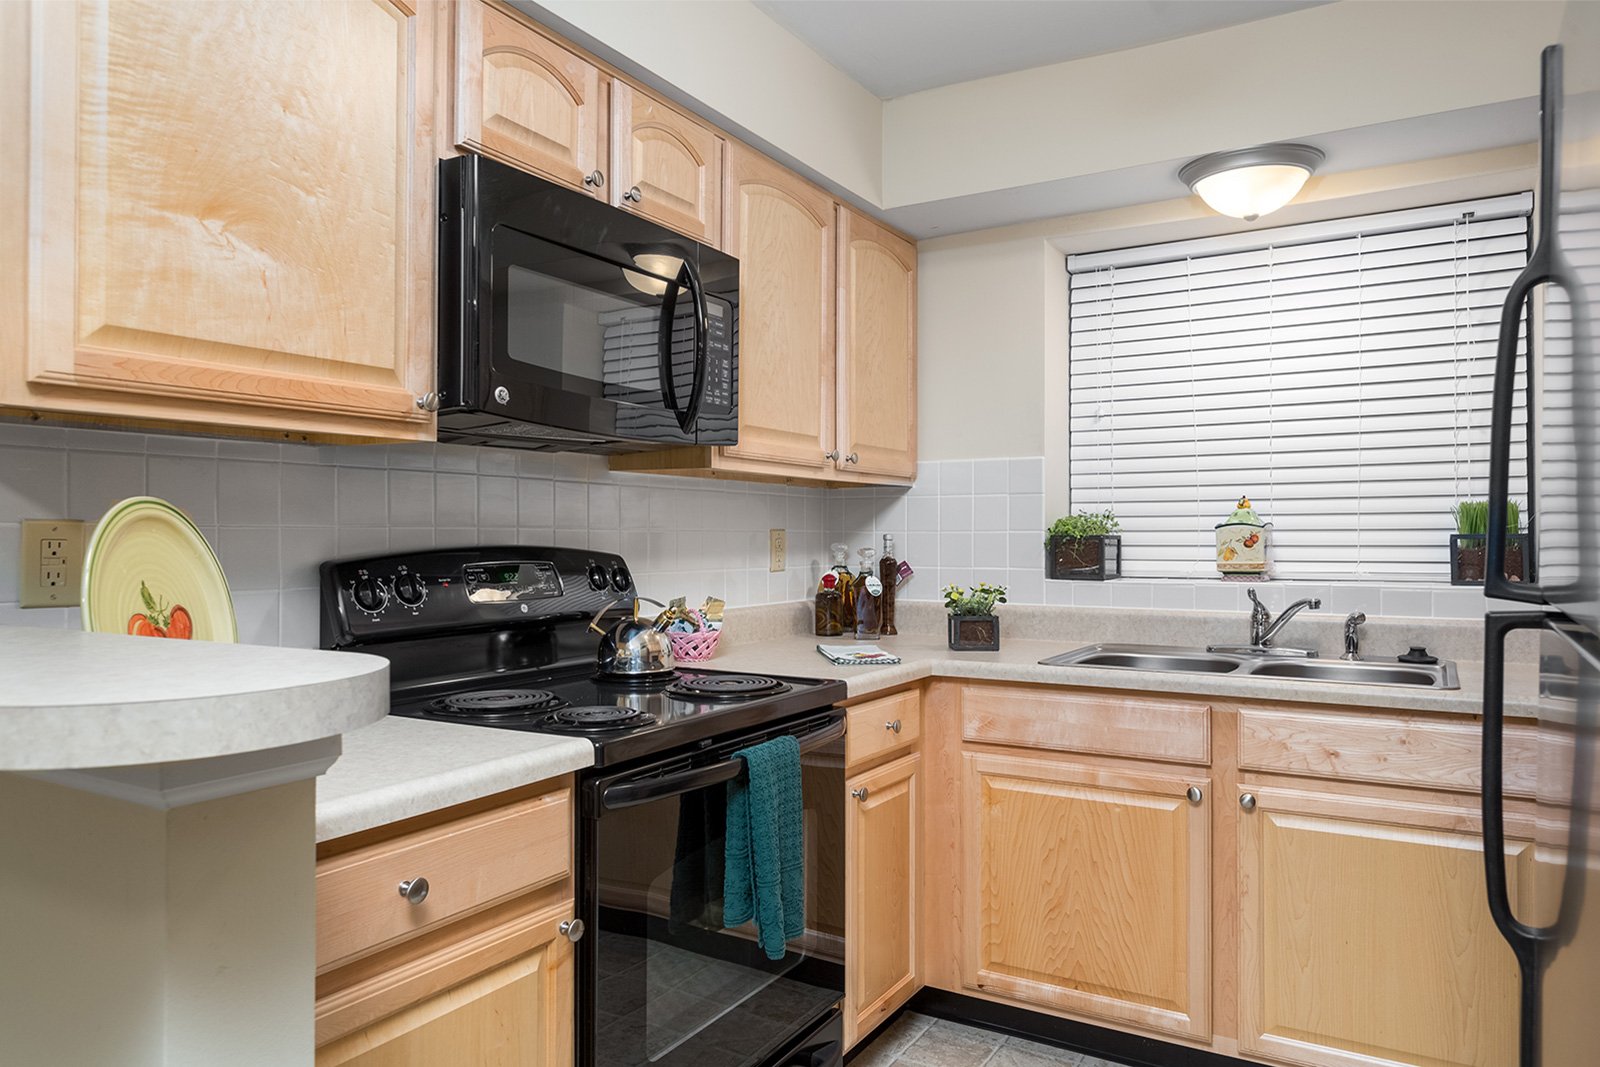 A kitchen at Chesterfield Village Apartments